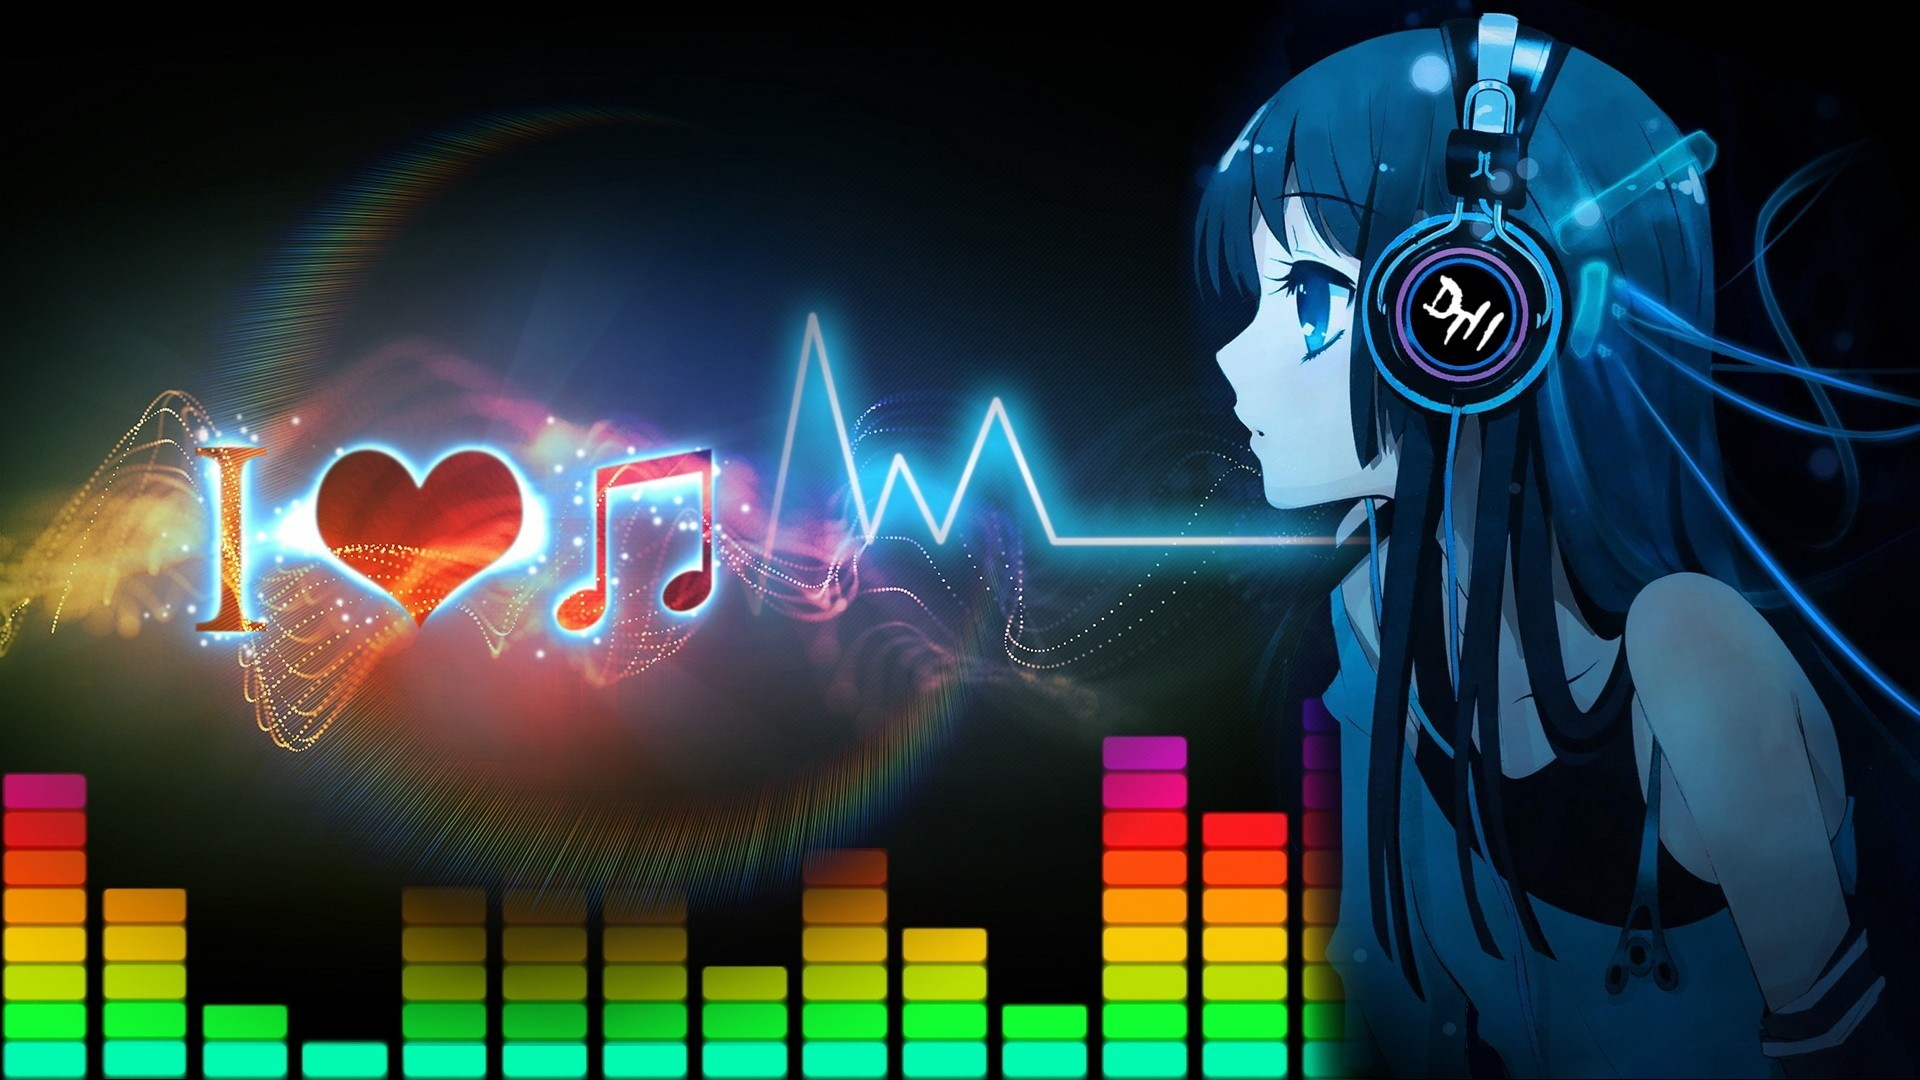 1920x1200 Anime Music Wallpapers Hd Page 0